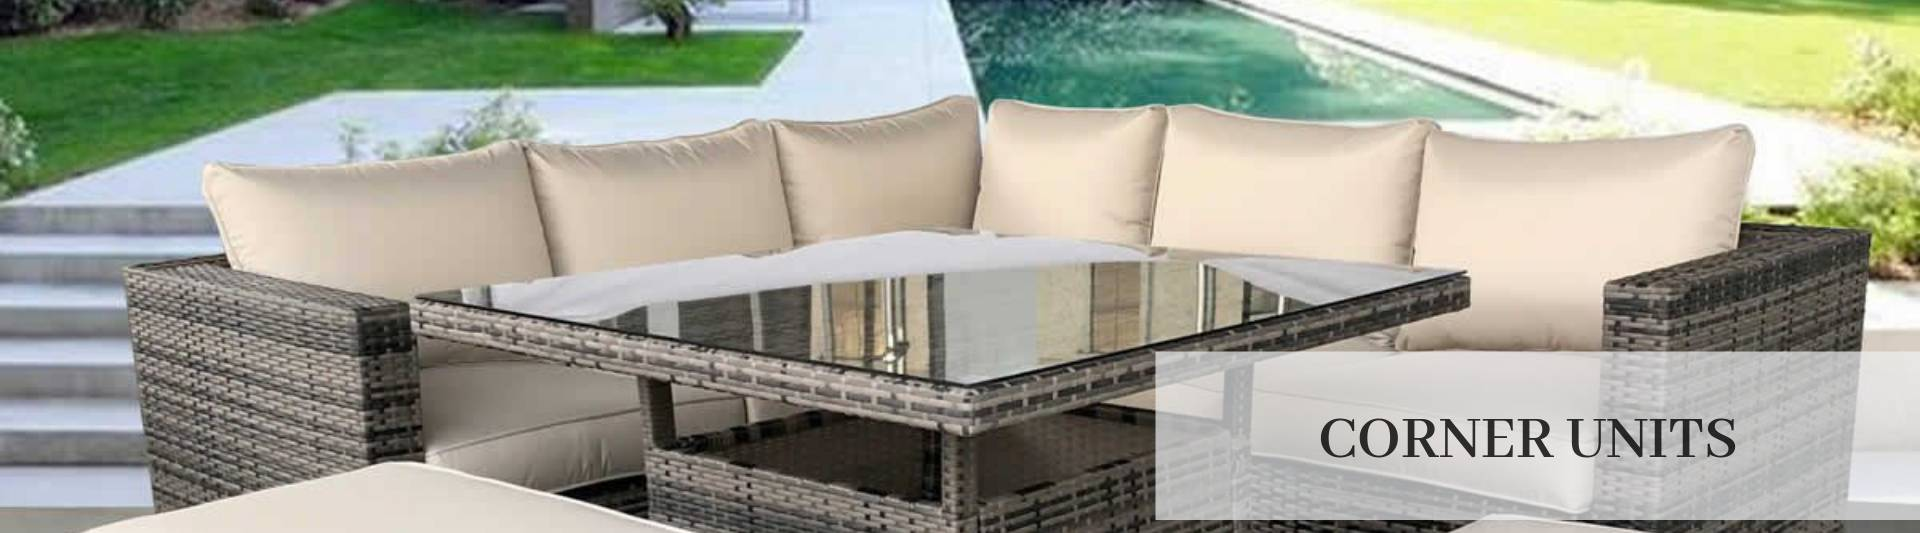 Rattan Corner Sofa Ireland Garden Corner Units Outdoor Corner Sofa Sets